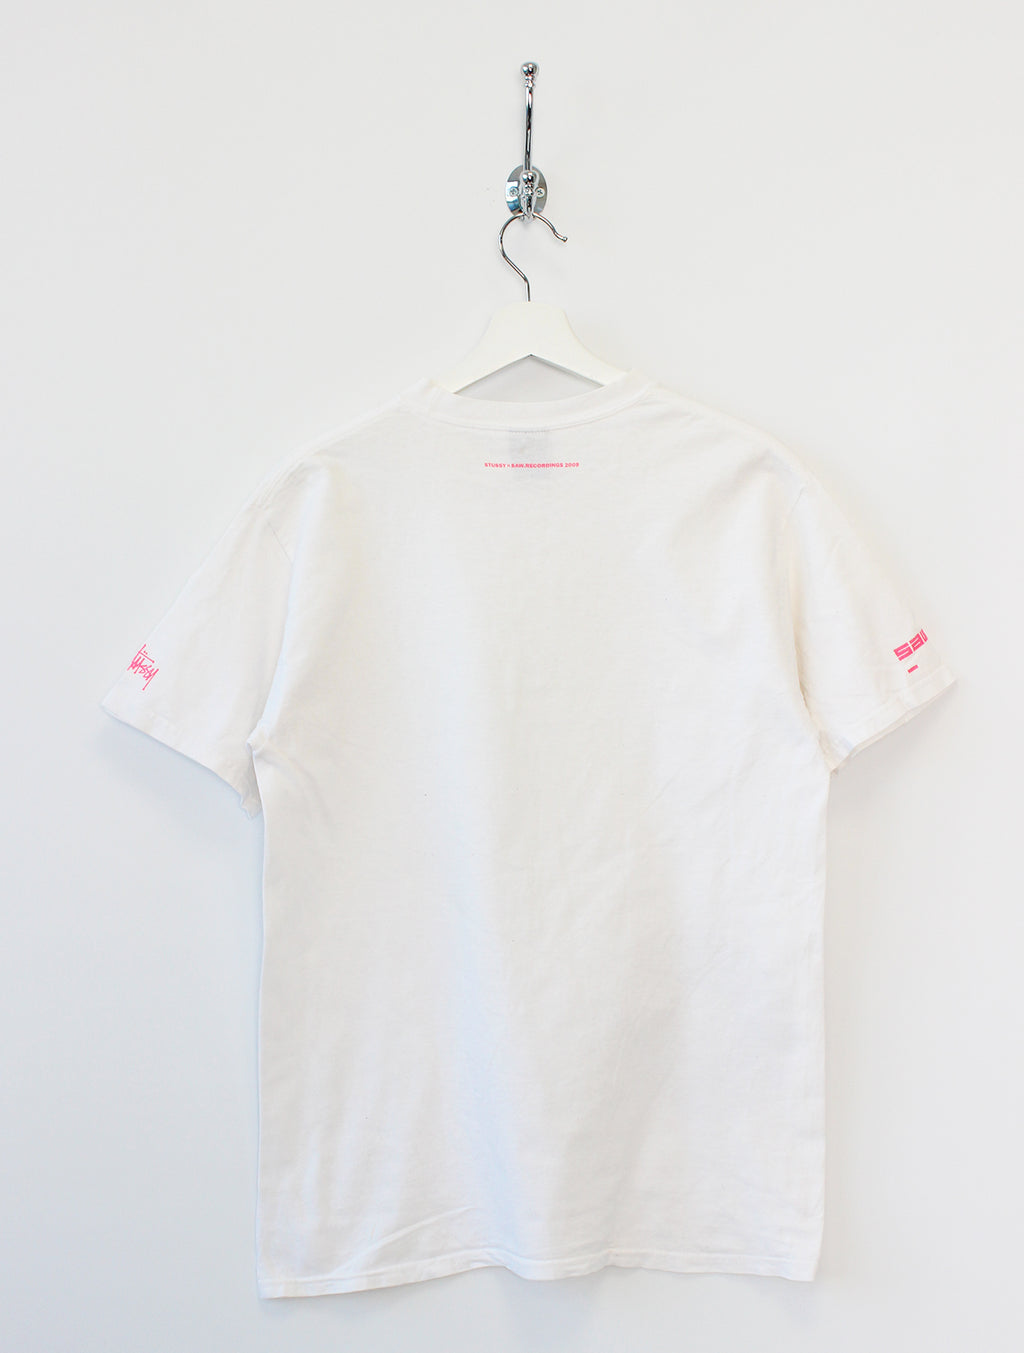 Stussy x SAW Recordings T-Shirt (M)